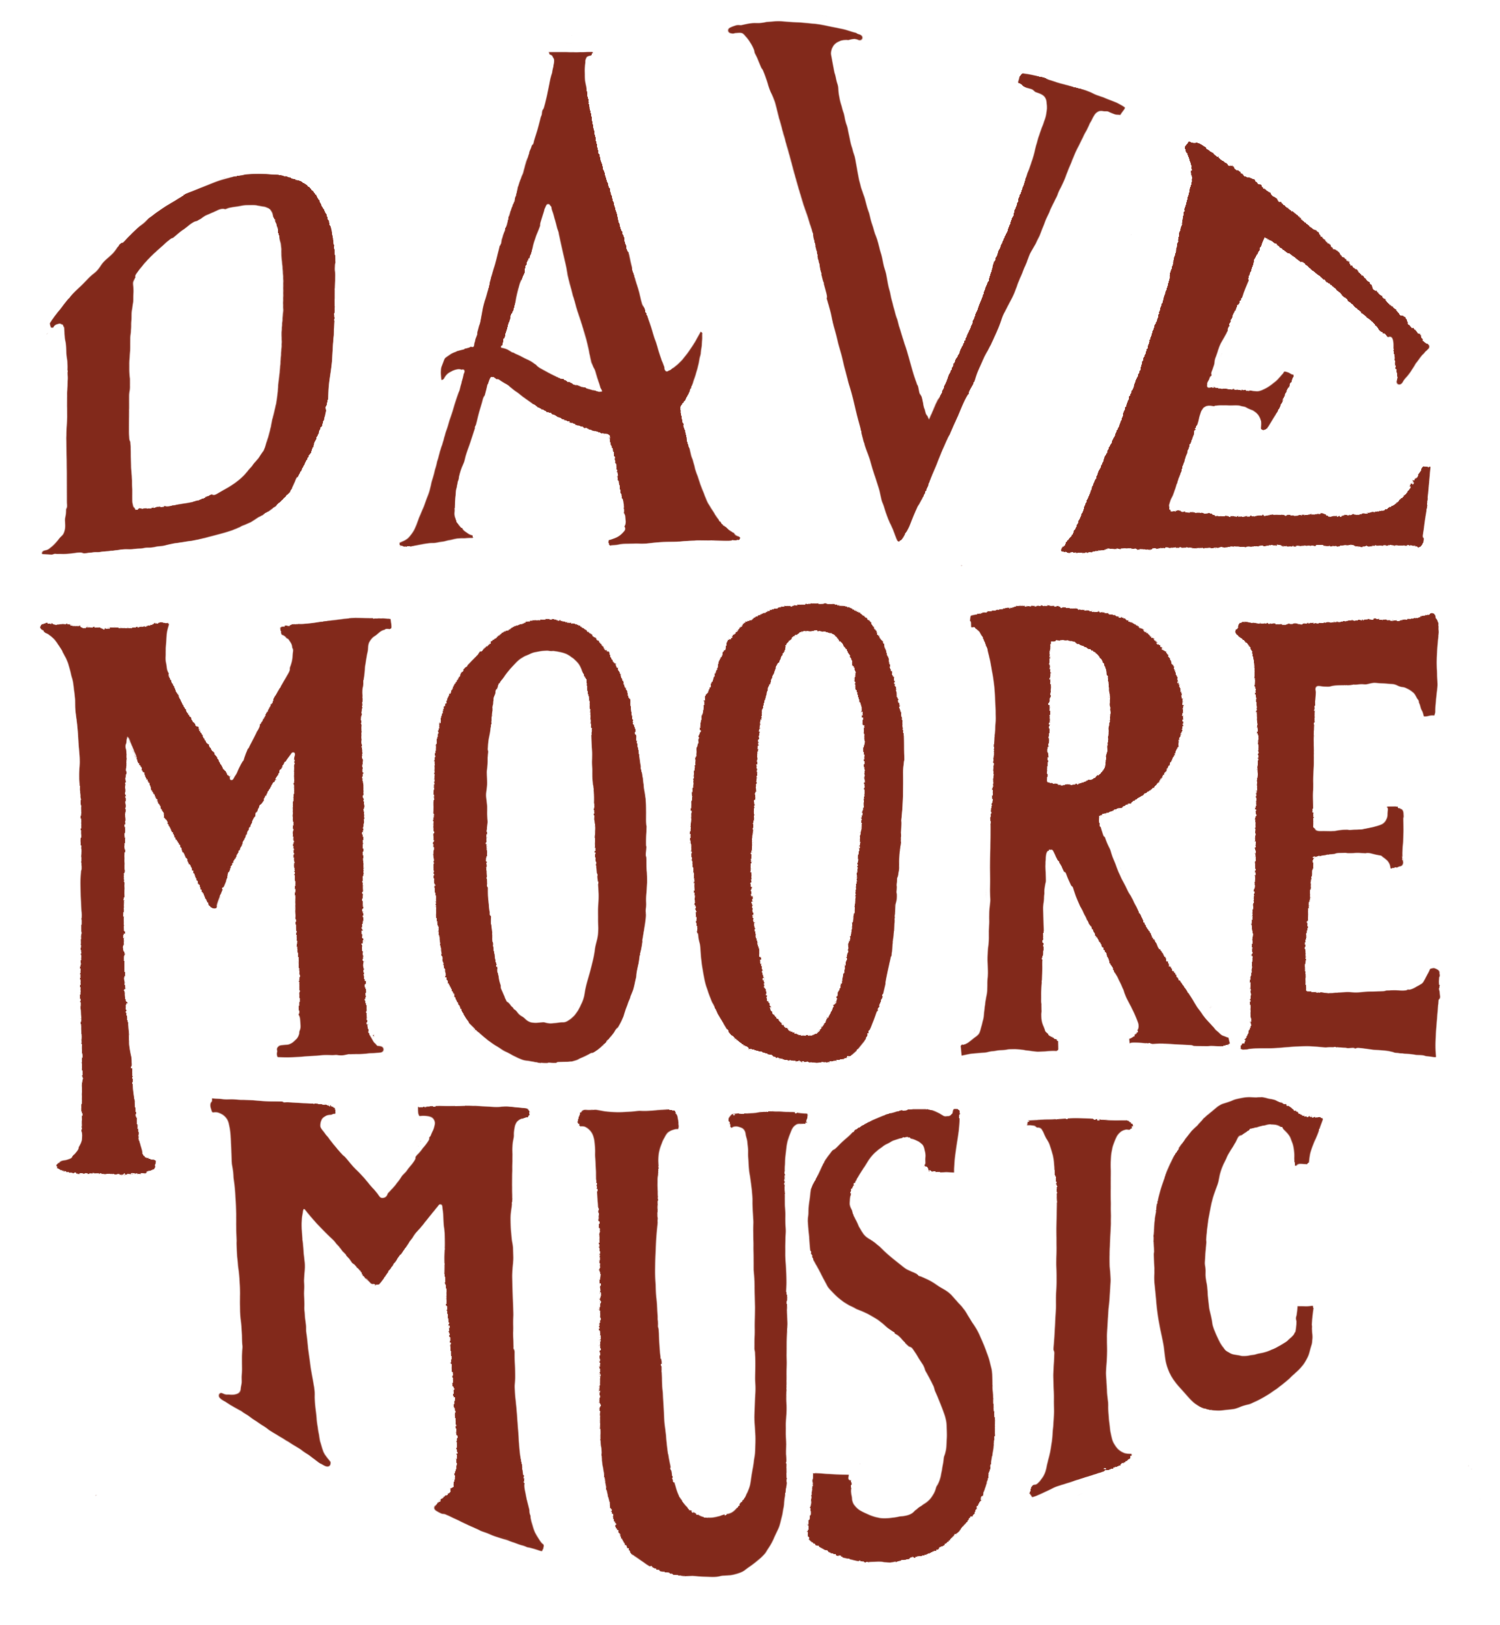 Dave Moore Music Official